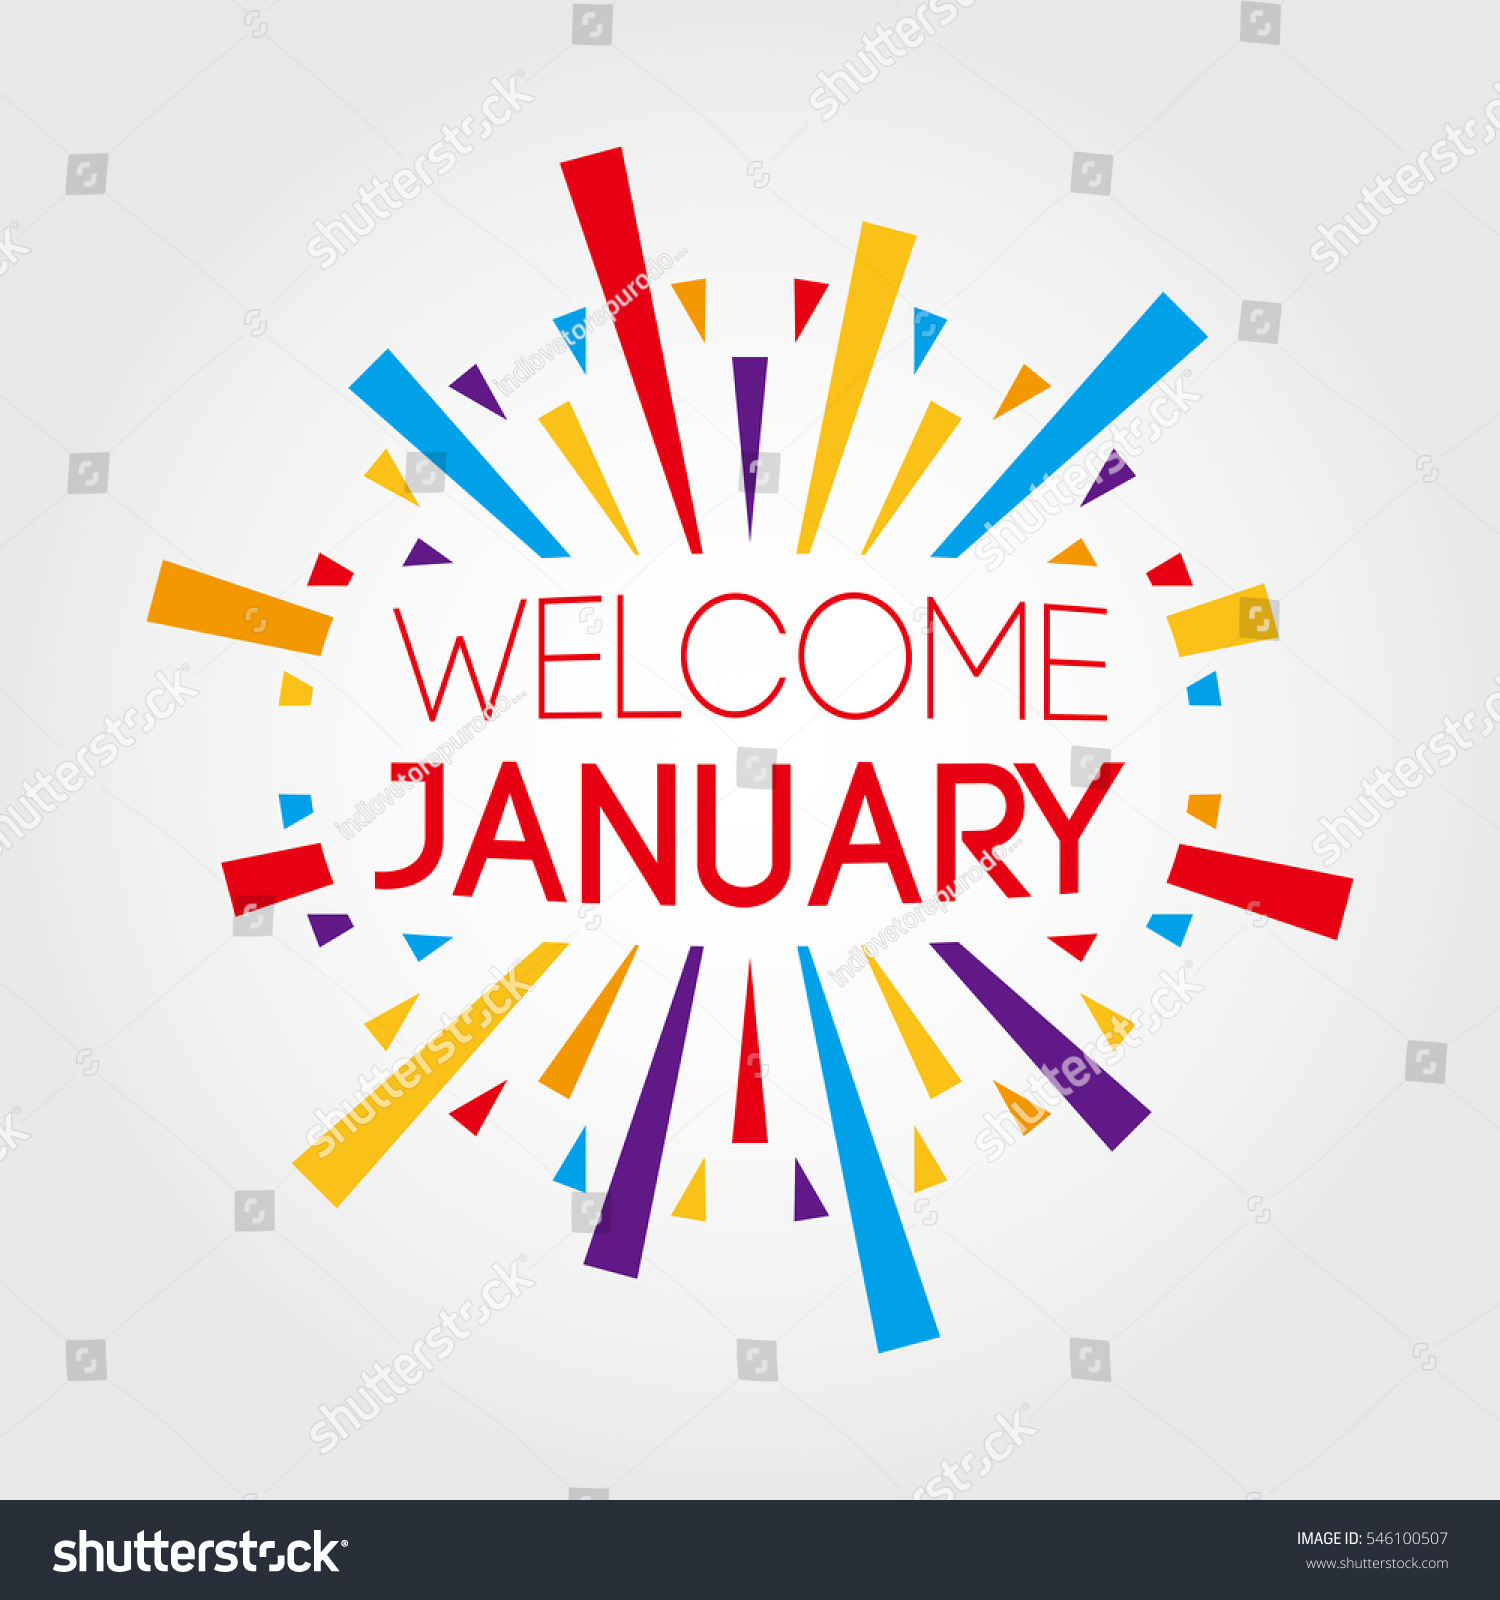 Welcome January Vector Illustration Poster Banner Stock